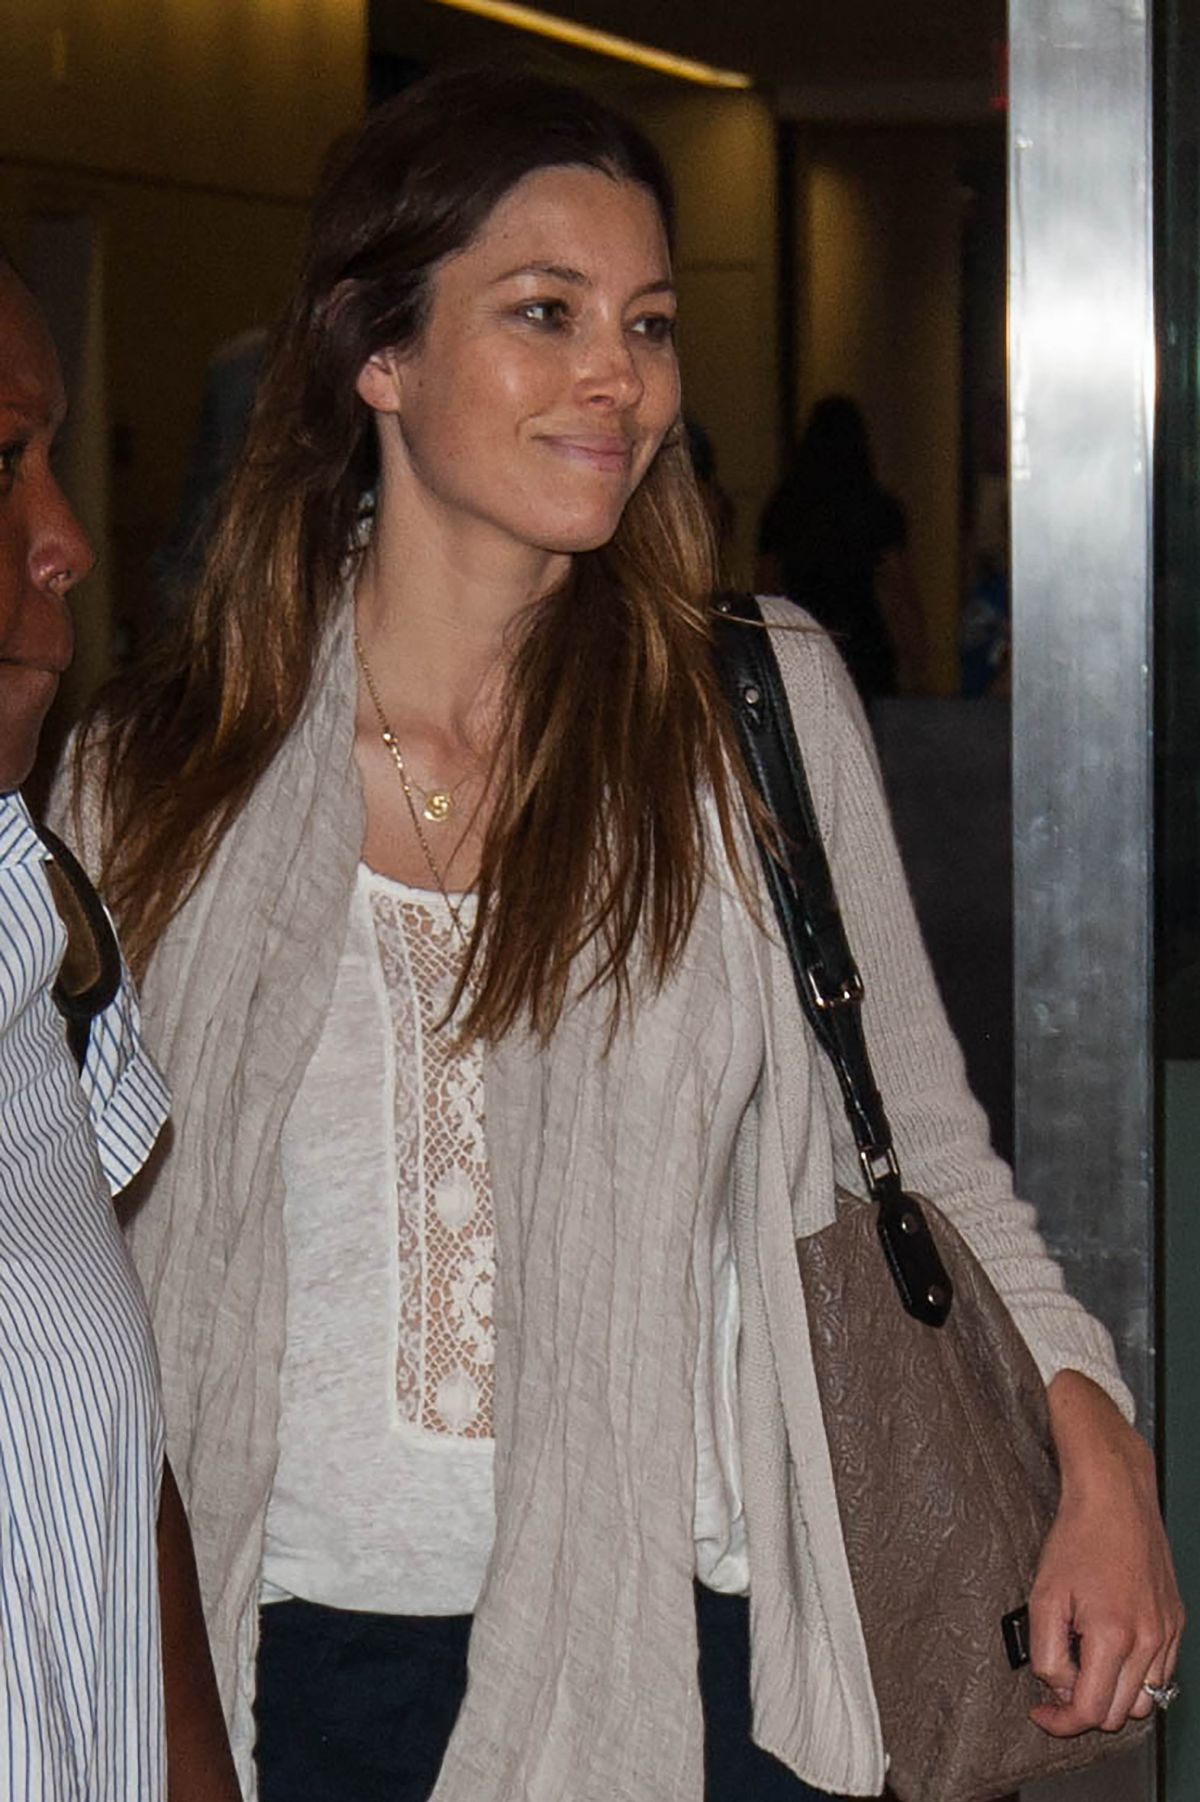 Molly sims archives page 2 of 7 hawtcelebs hawtcelebs - Jessica Biel At Lax Airport In Los Angeles 07 26 2016